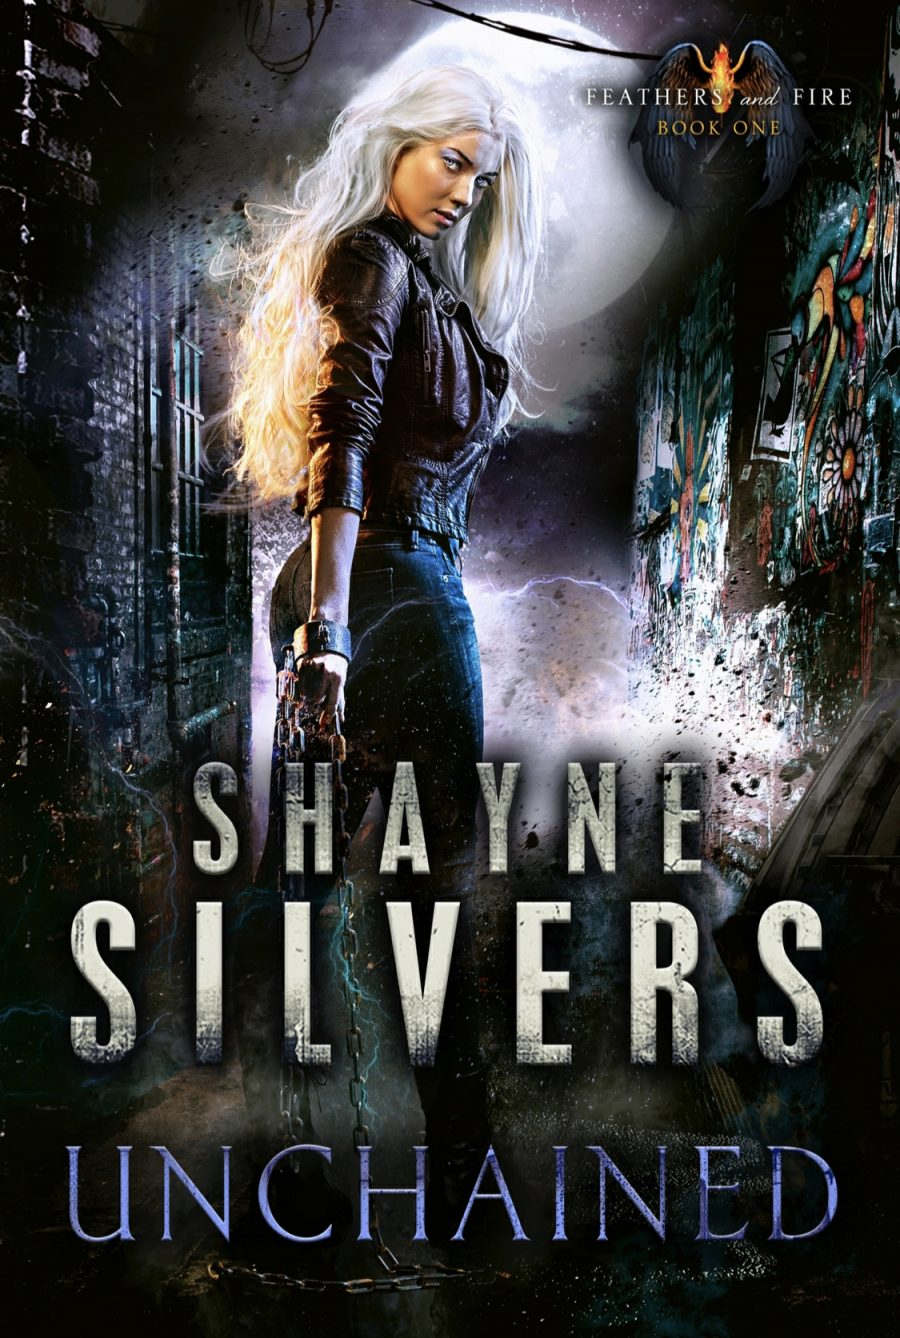 Unchained (Feathers and Fire - Book 1) by Shayne Silvers - A Book Review #BookReview #UrbanFantasy #UF #4stars #KindleUnlimited #KU #NateSilvers